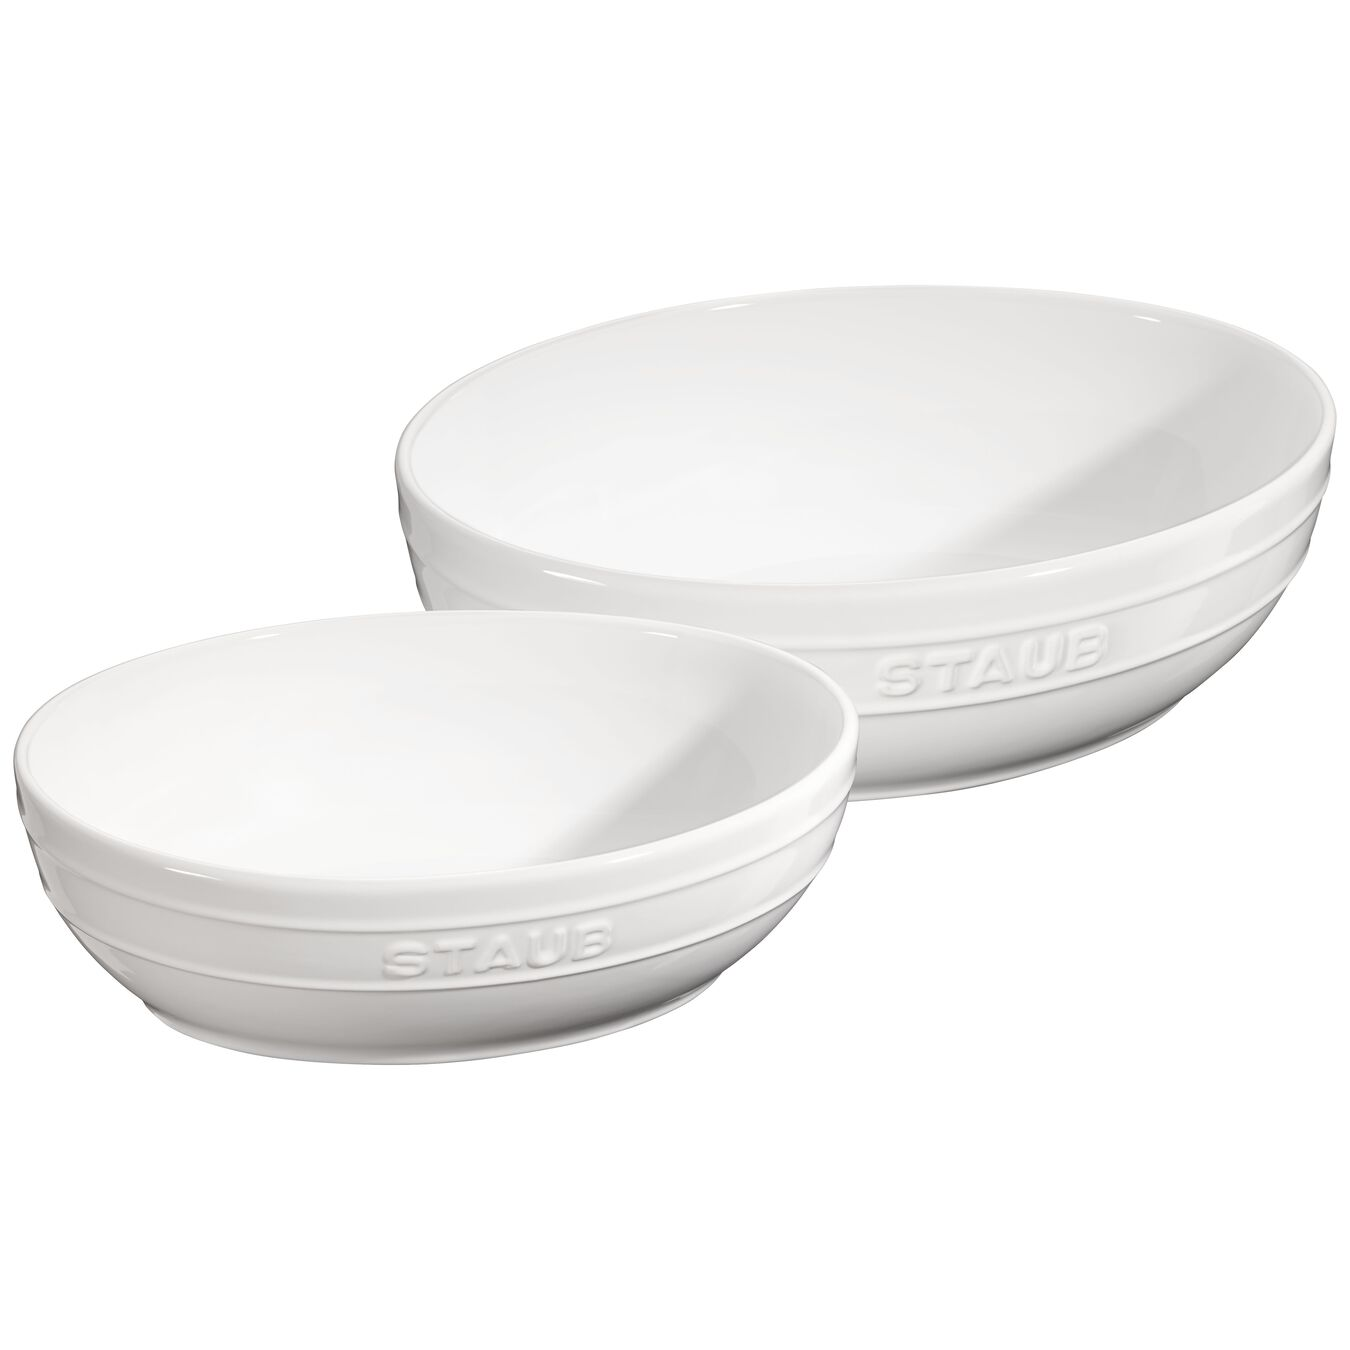 2 Piece Ceramic oval Bowl set, Pure-White,,large 1